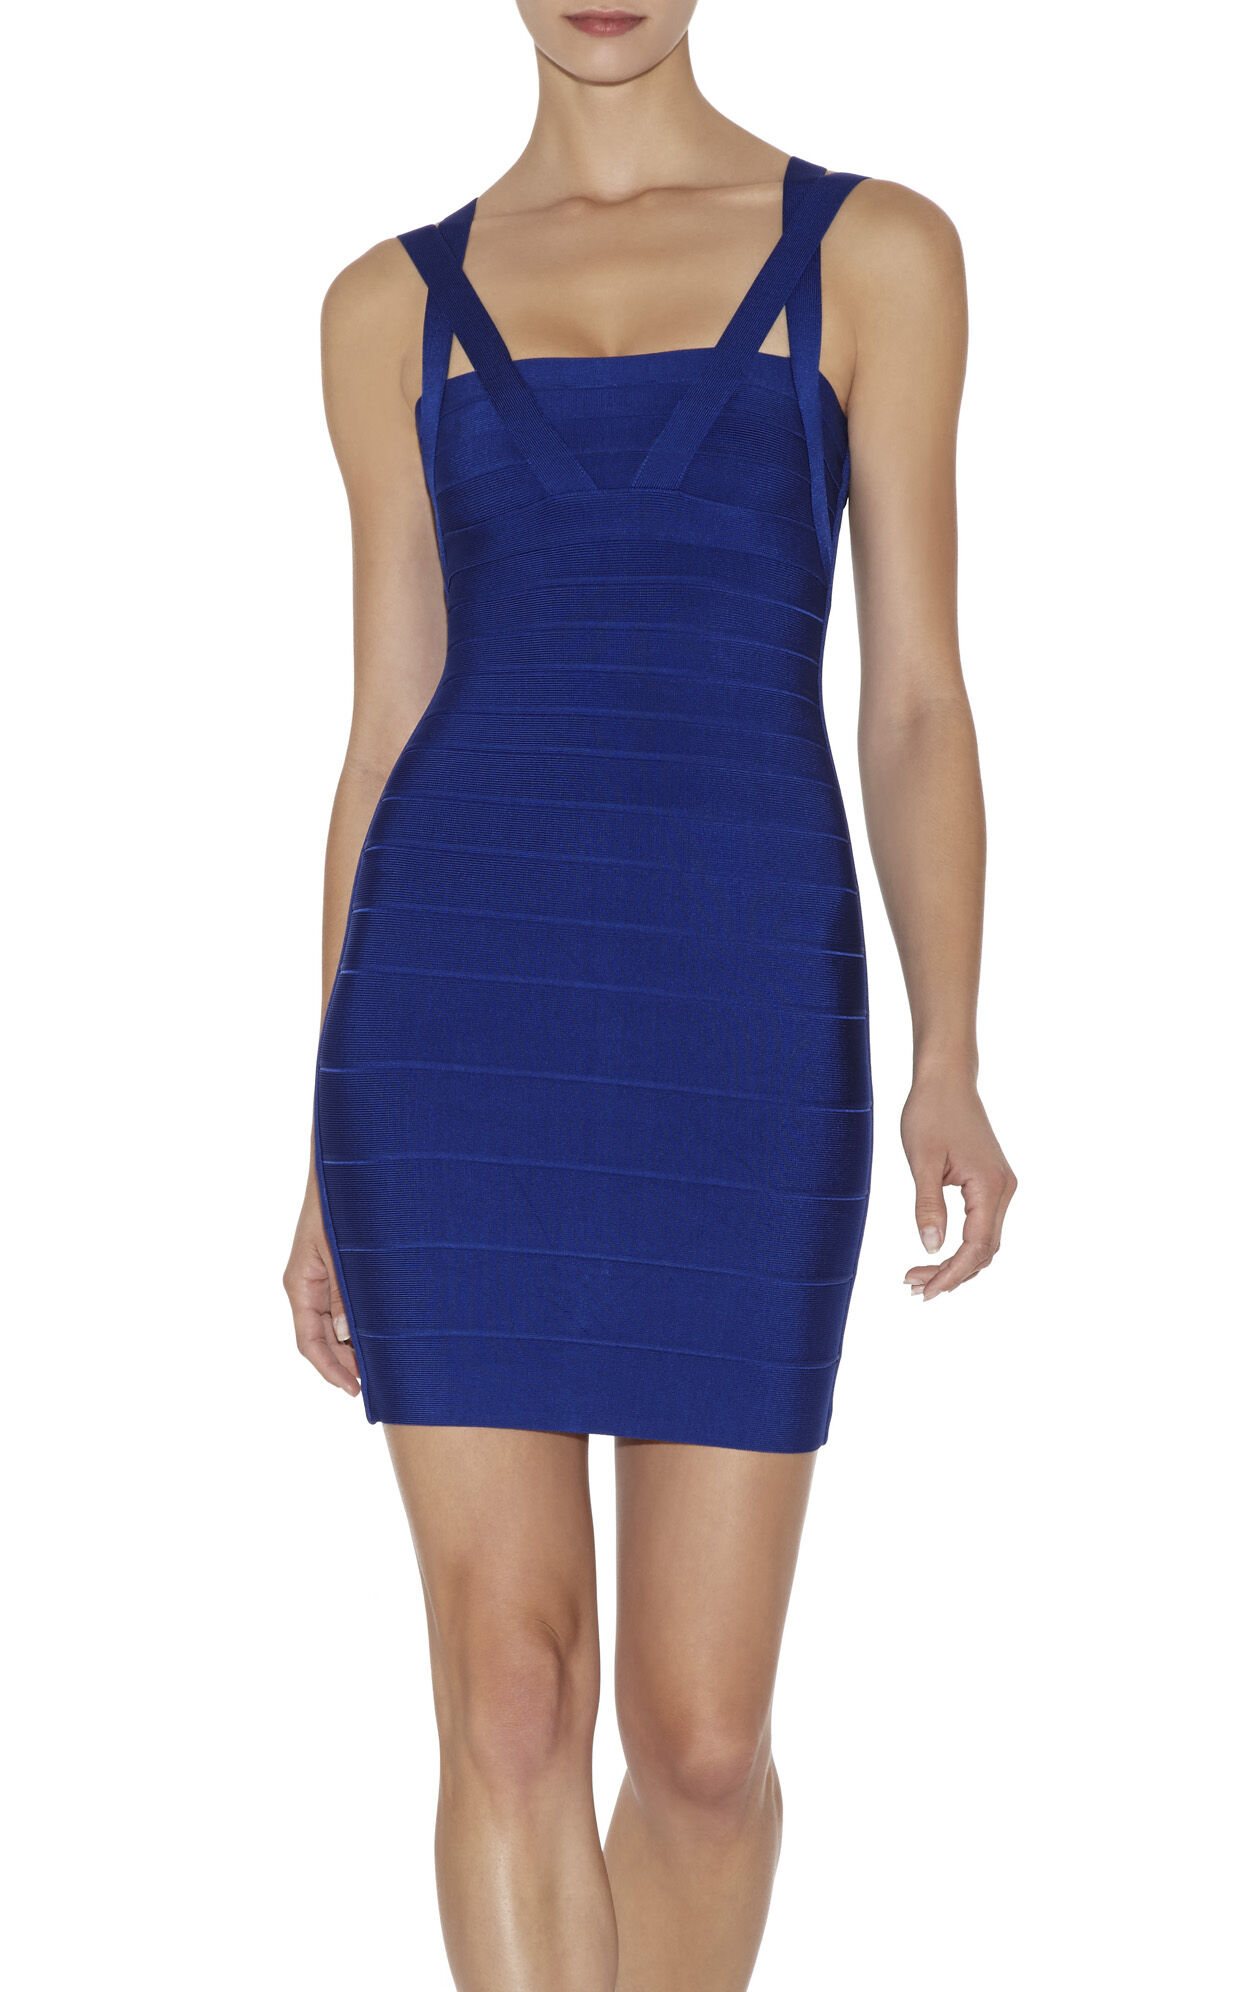 Zinnia Signature Bandage Dress